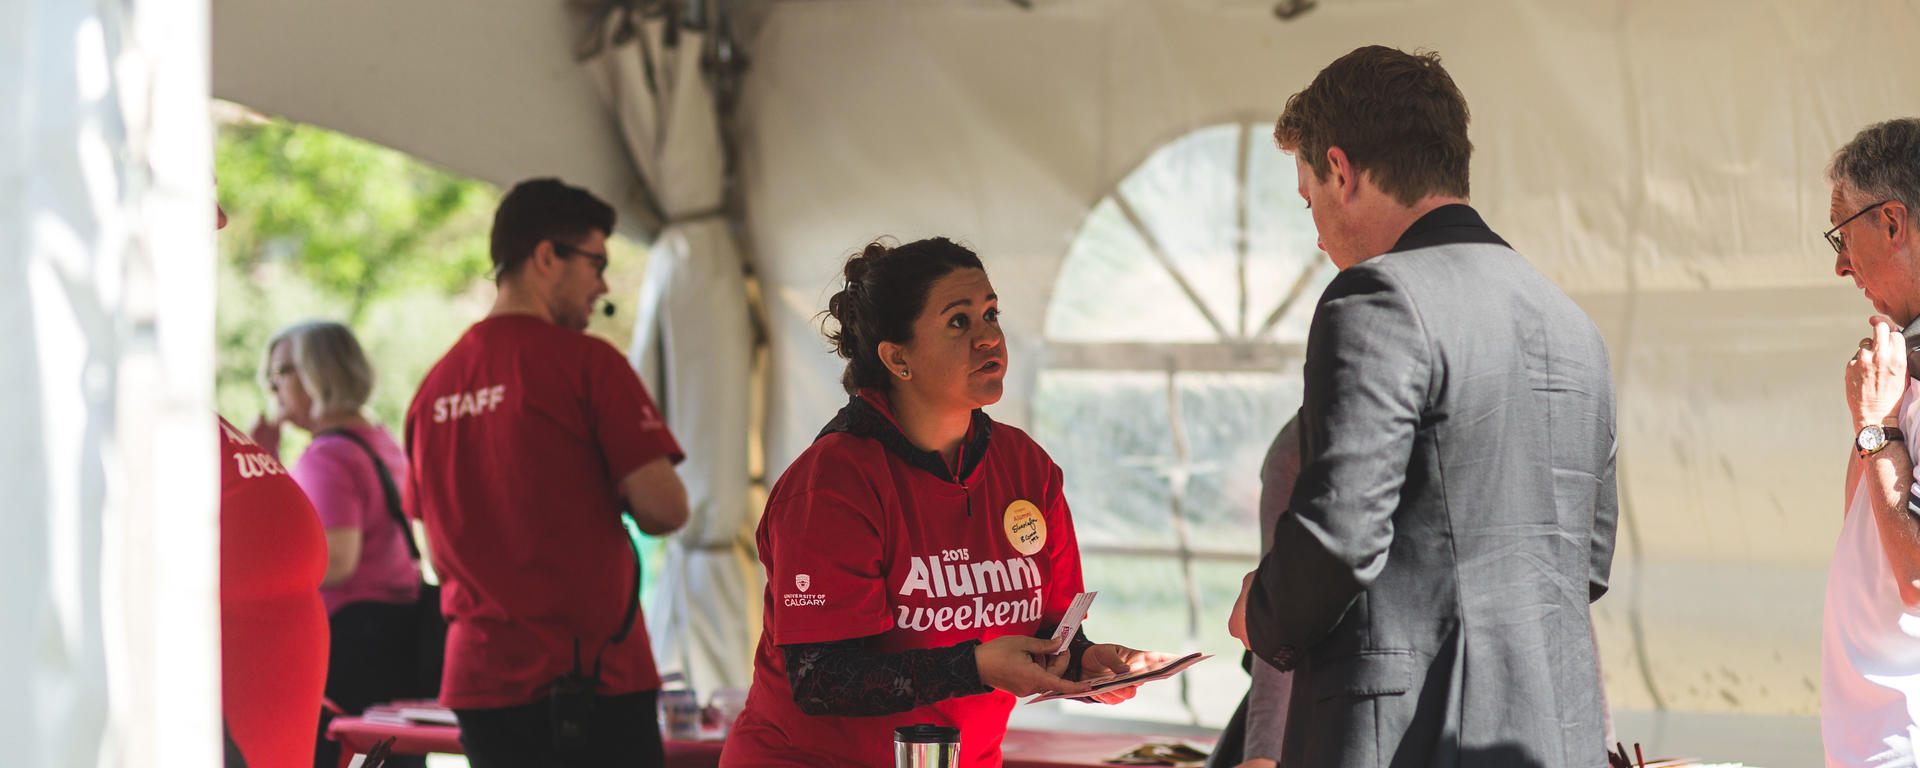 UCalgary piloted Alumni Weekend in 2015. It has been an annual event since.